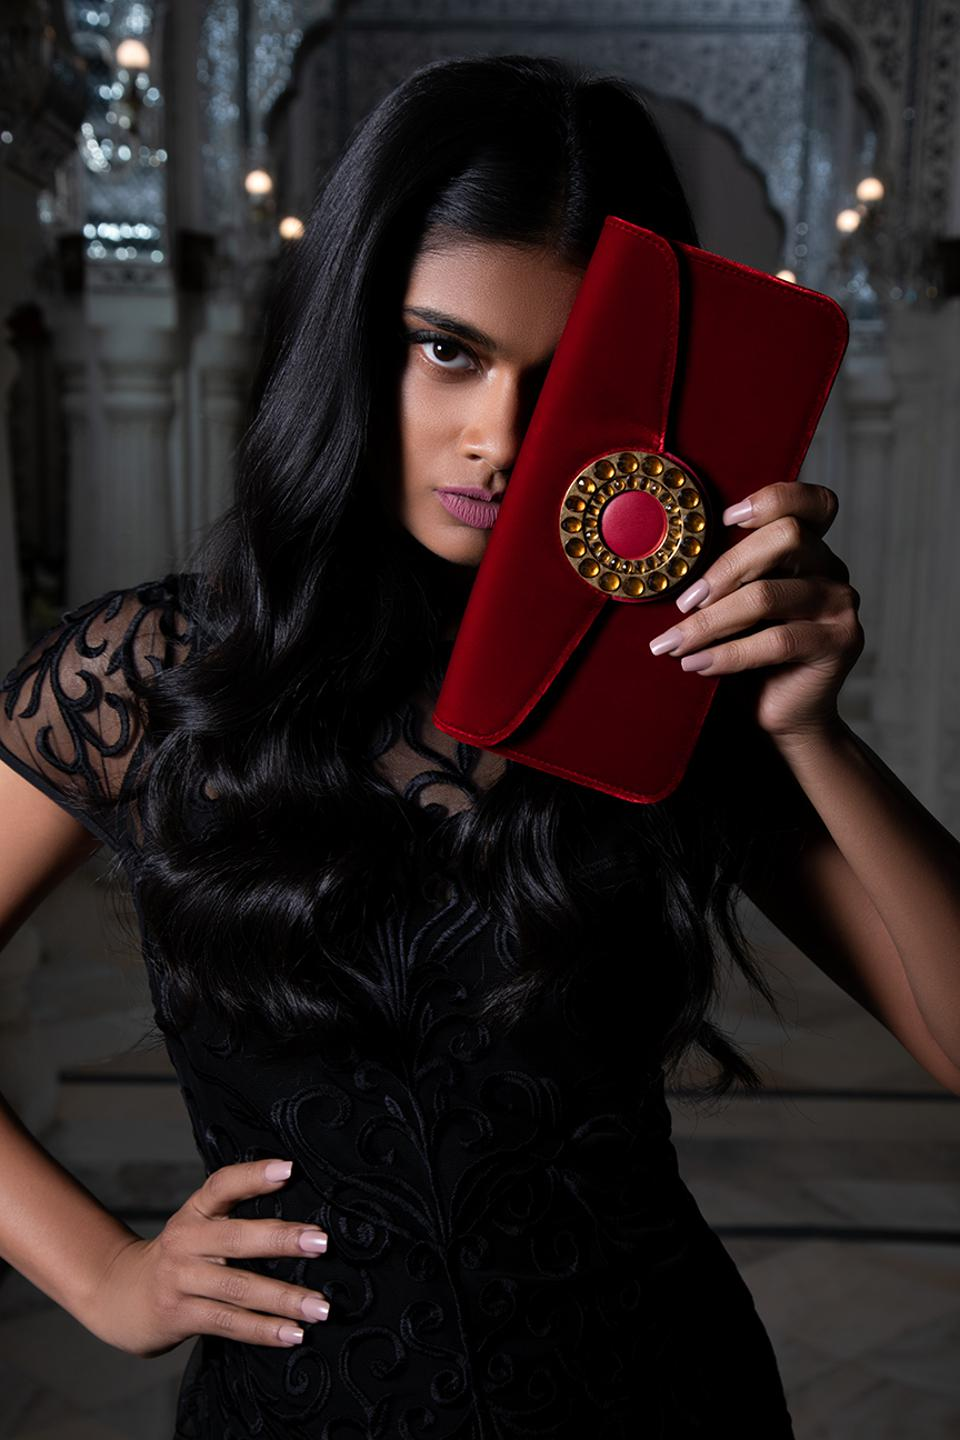 In red, green, and black, Aranyani's evening clutch takes its cues from the simple and elegant architectural beauty of the ancient palaces of Rajasthan. Romancing simplicity with old world elegance, this bag is made of the finest Italian viscose velvet and lined with the finest French calf - Italian finish leather.